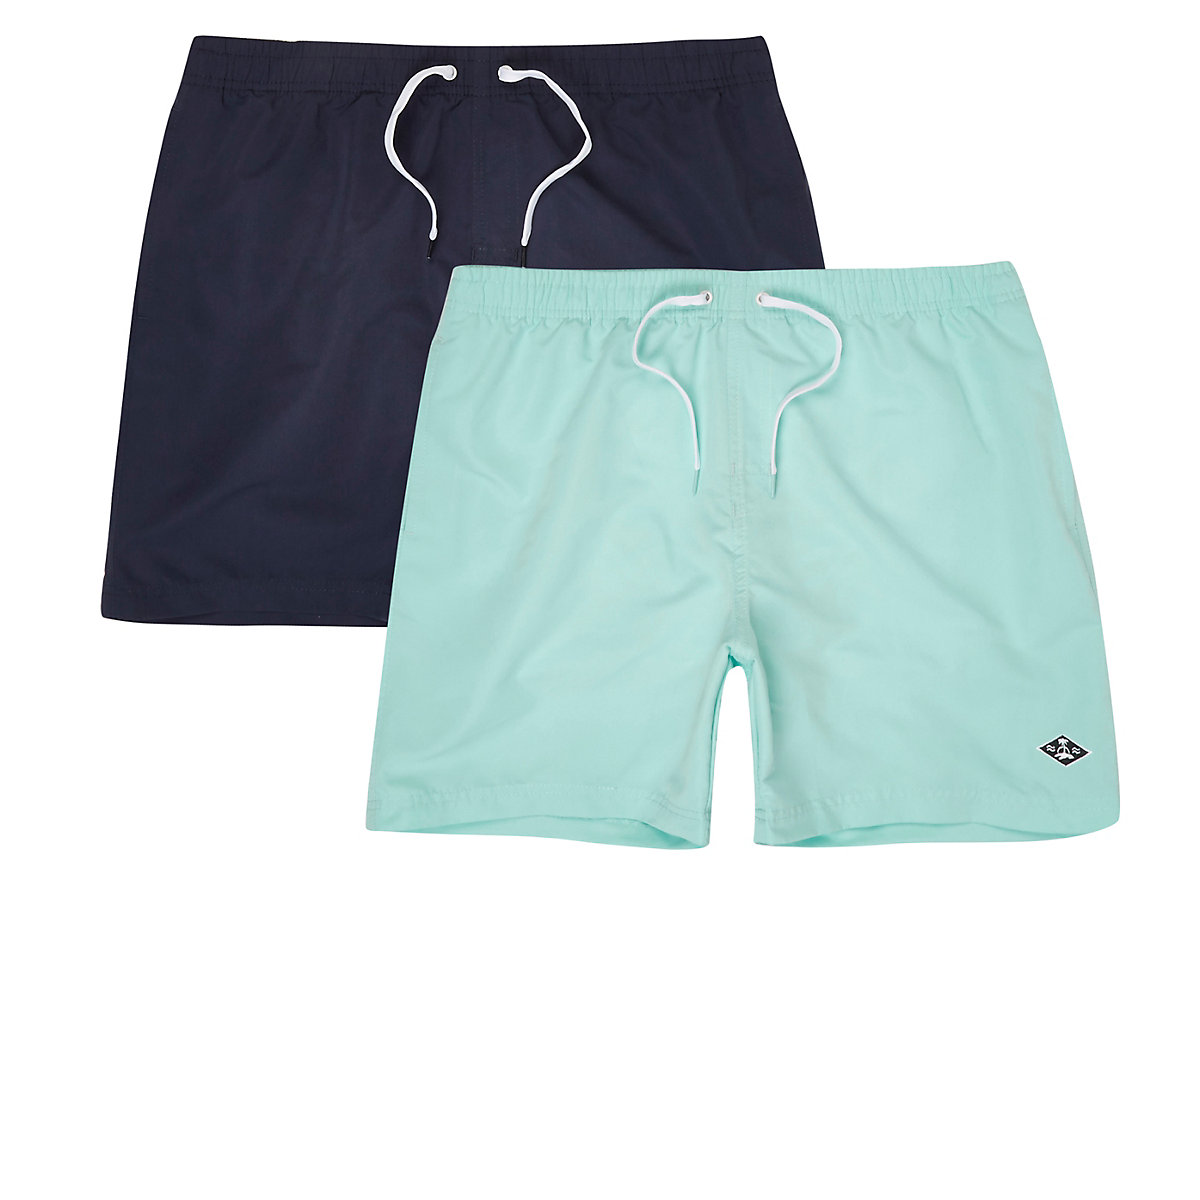 Navy and light blue swim shorts two pack